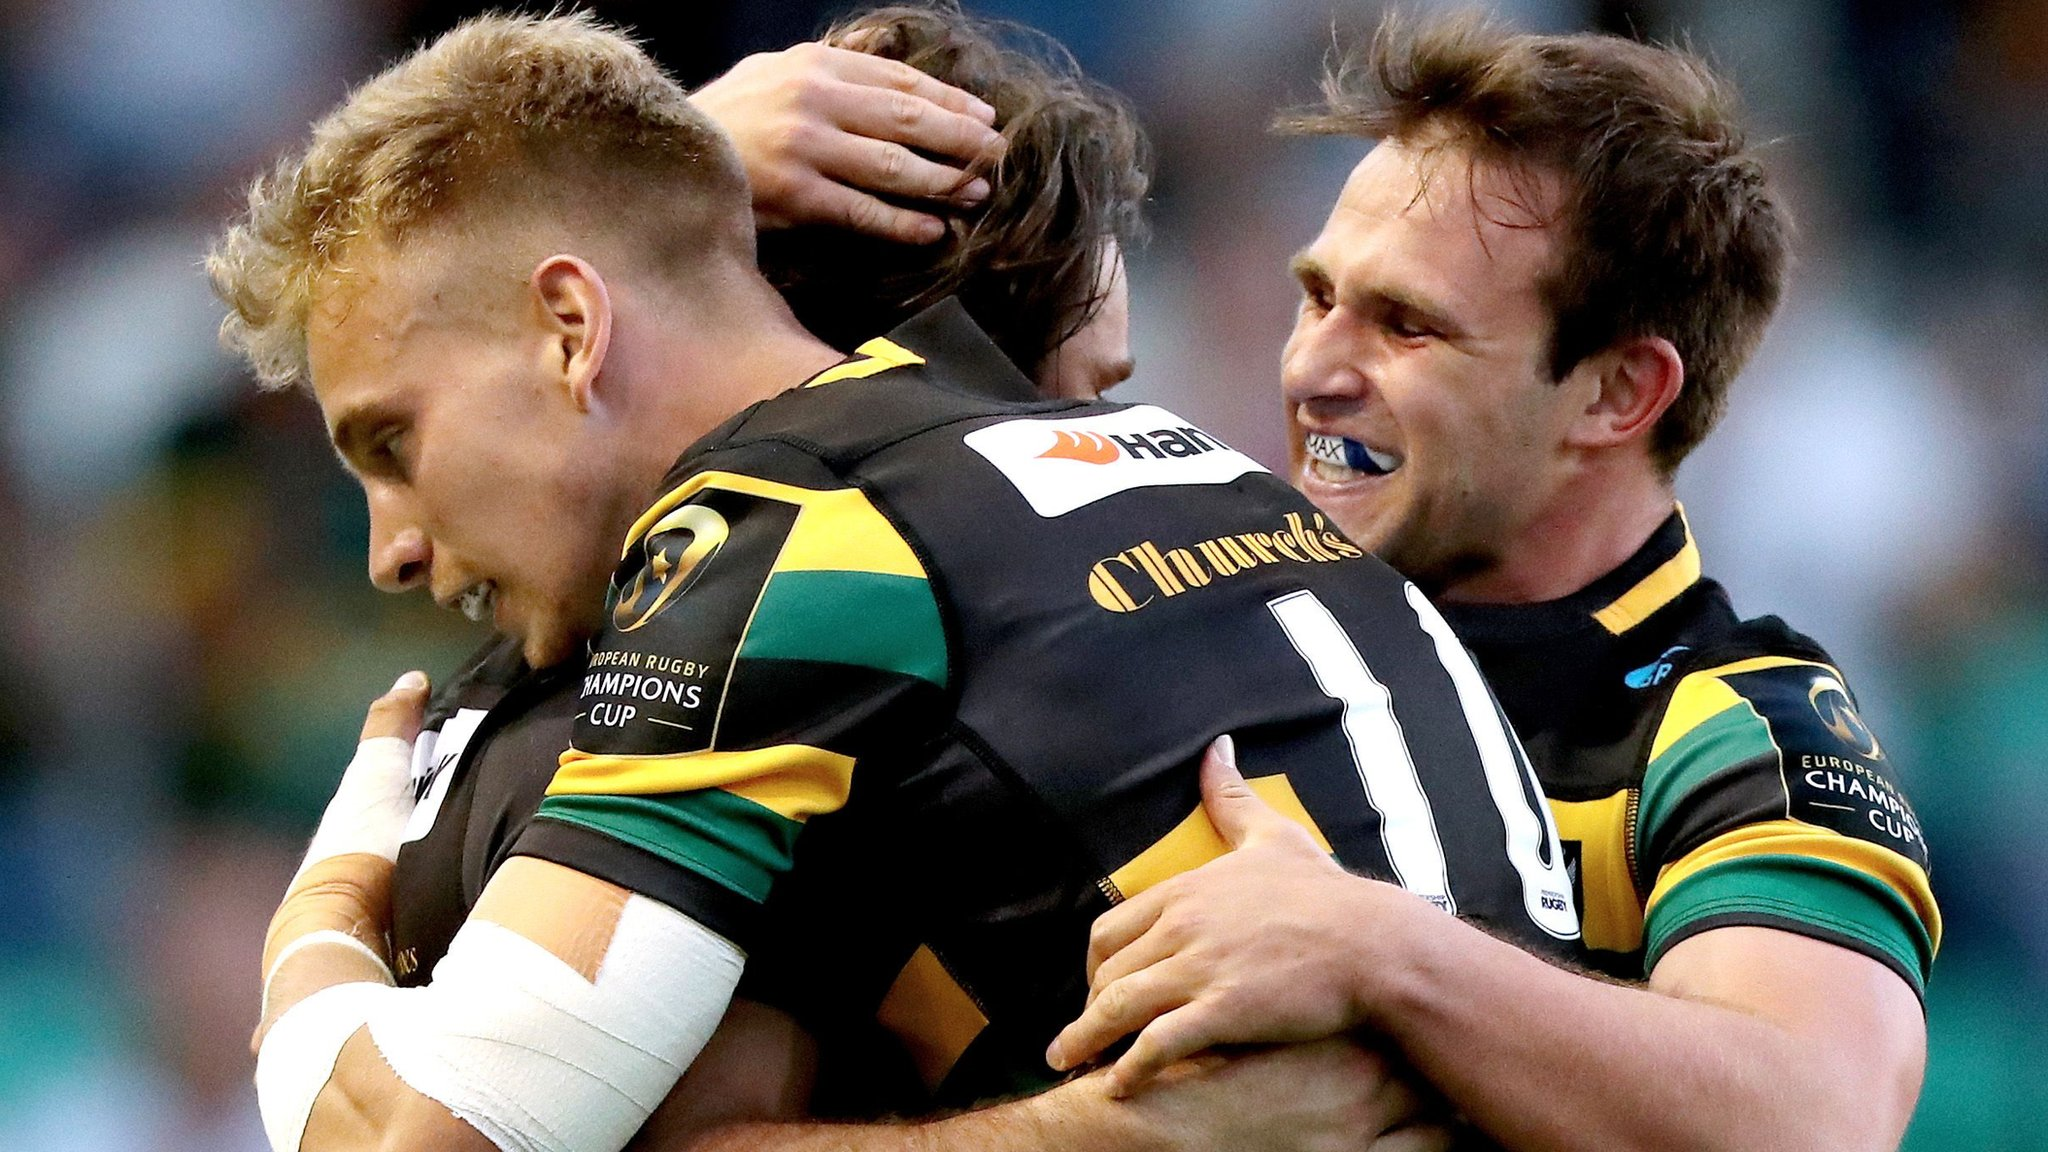 Saints clinch Champions Cup spot with dramatic late win over Stade